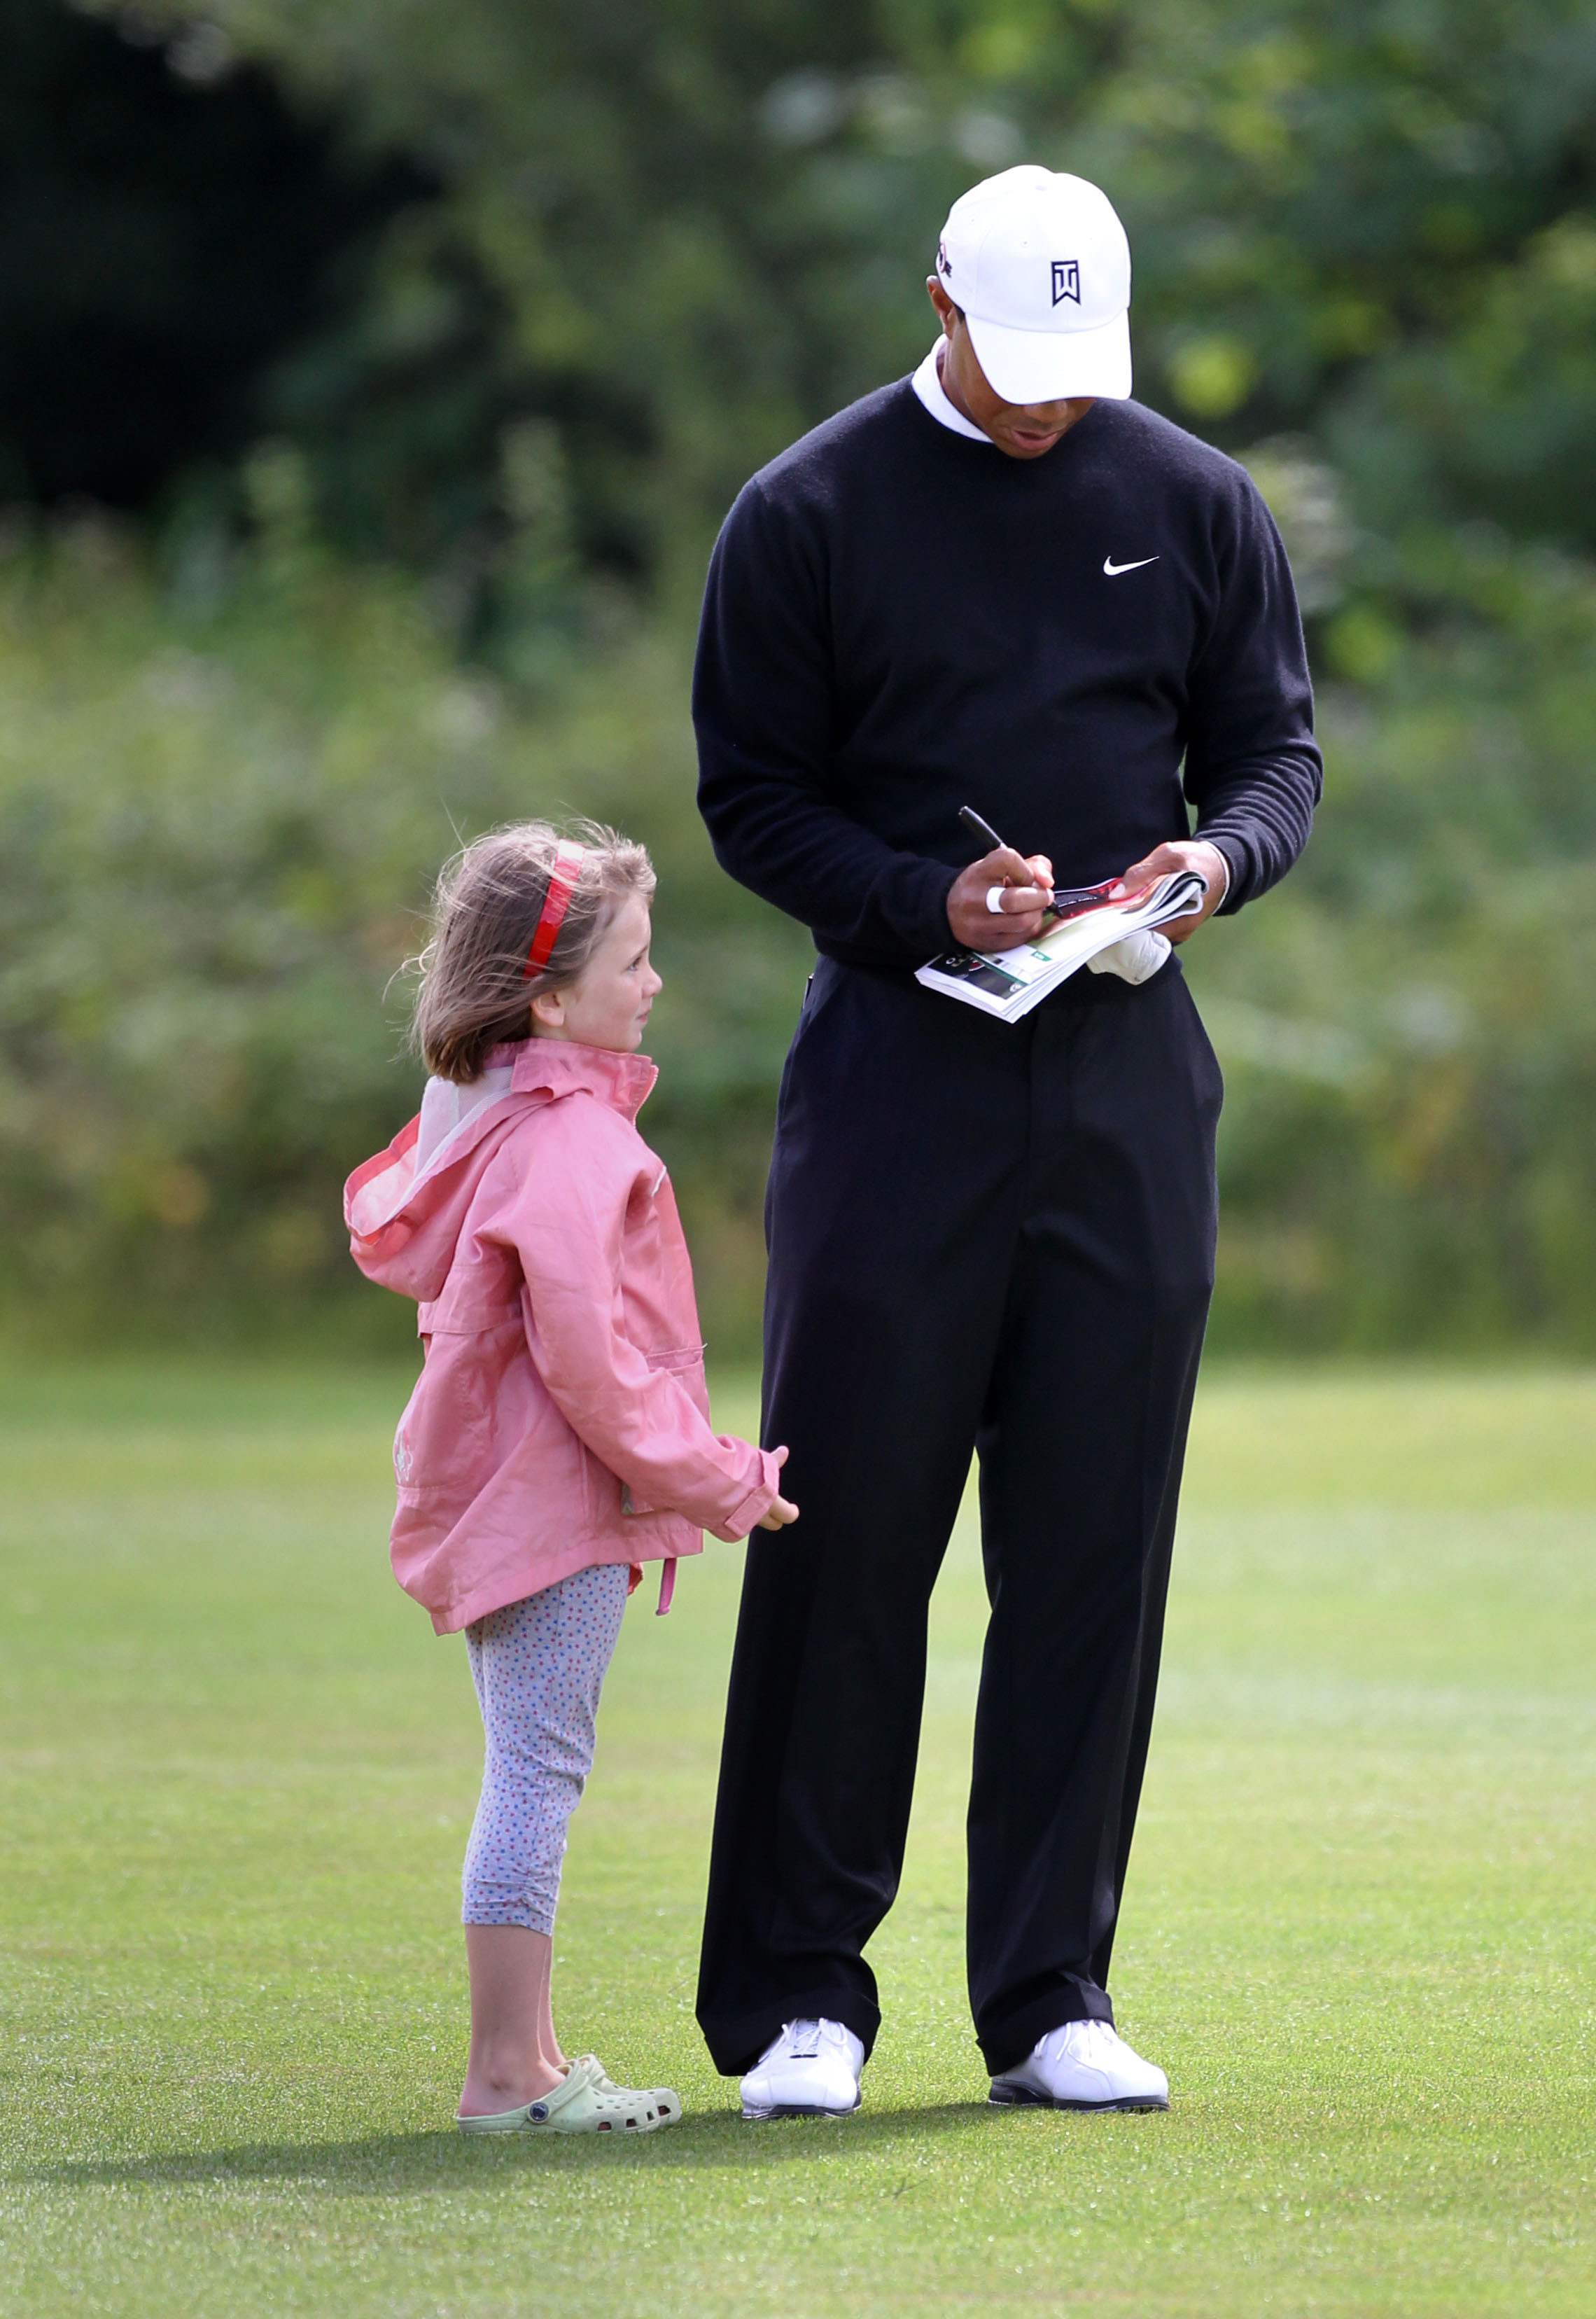 Tiger Woods signs an autograph for Ava Mulhall, 6, during the JP McManus Invitational Pro-Am.